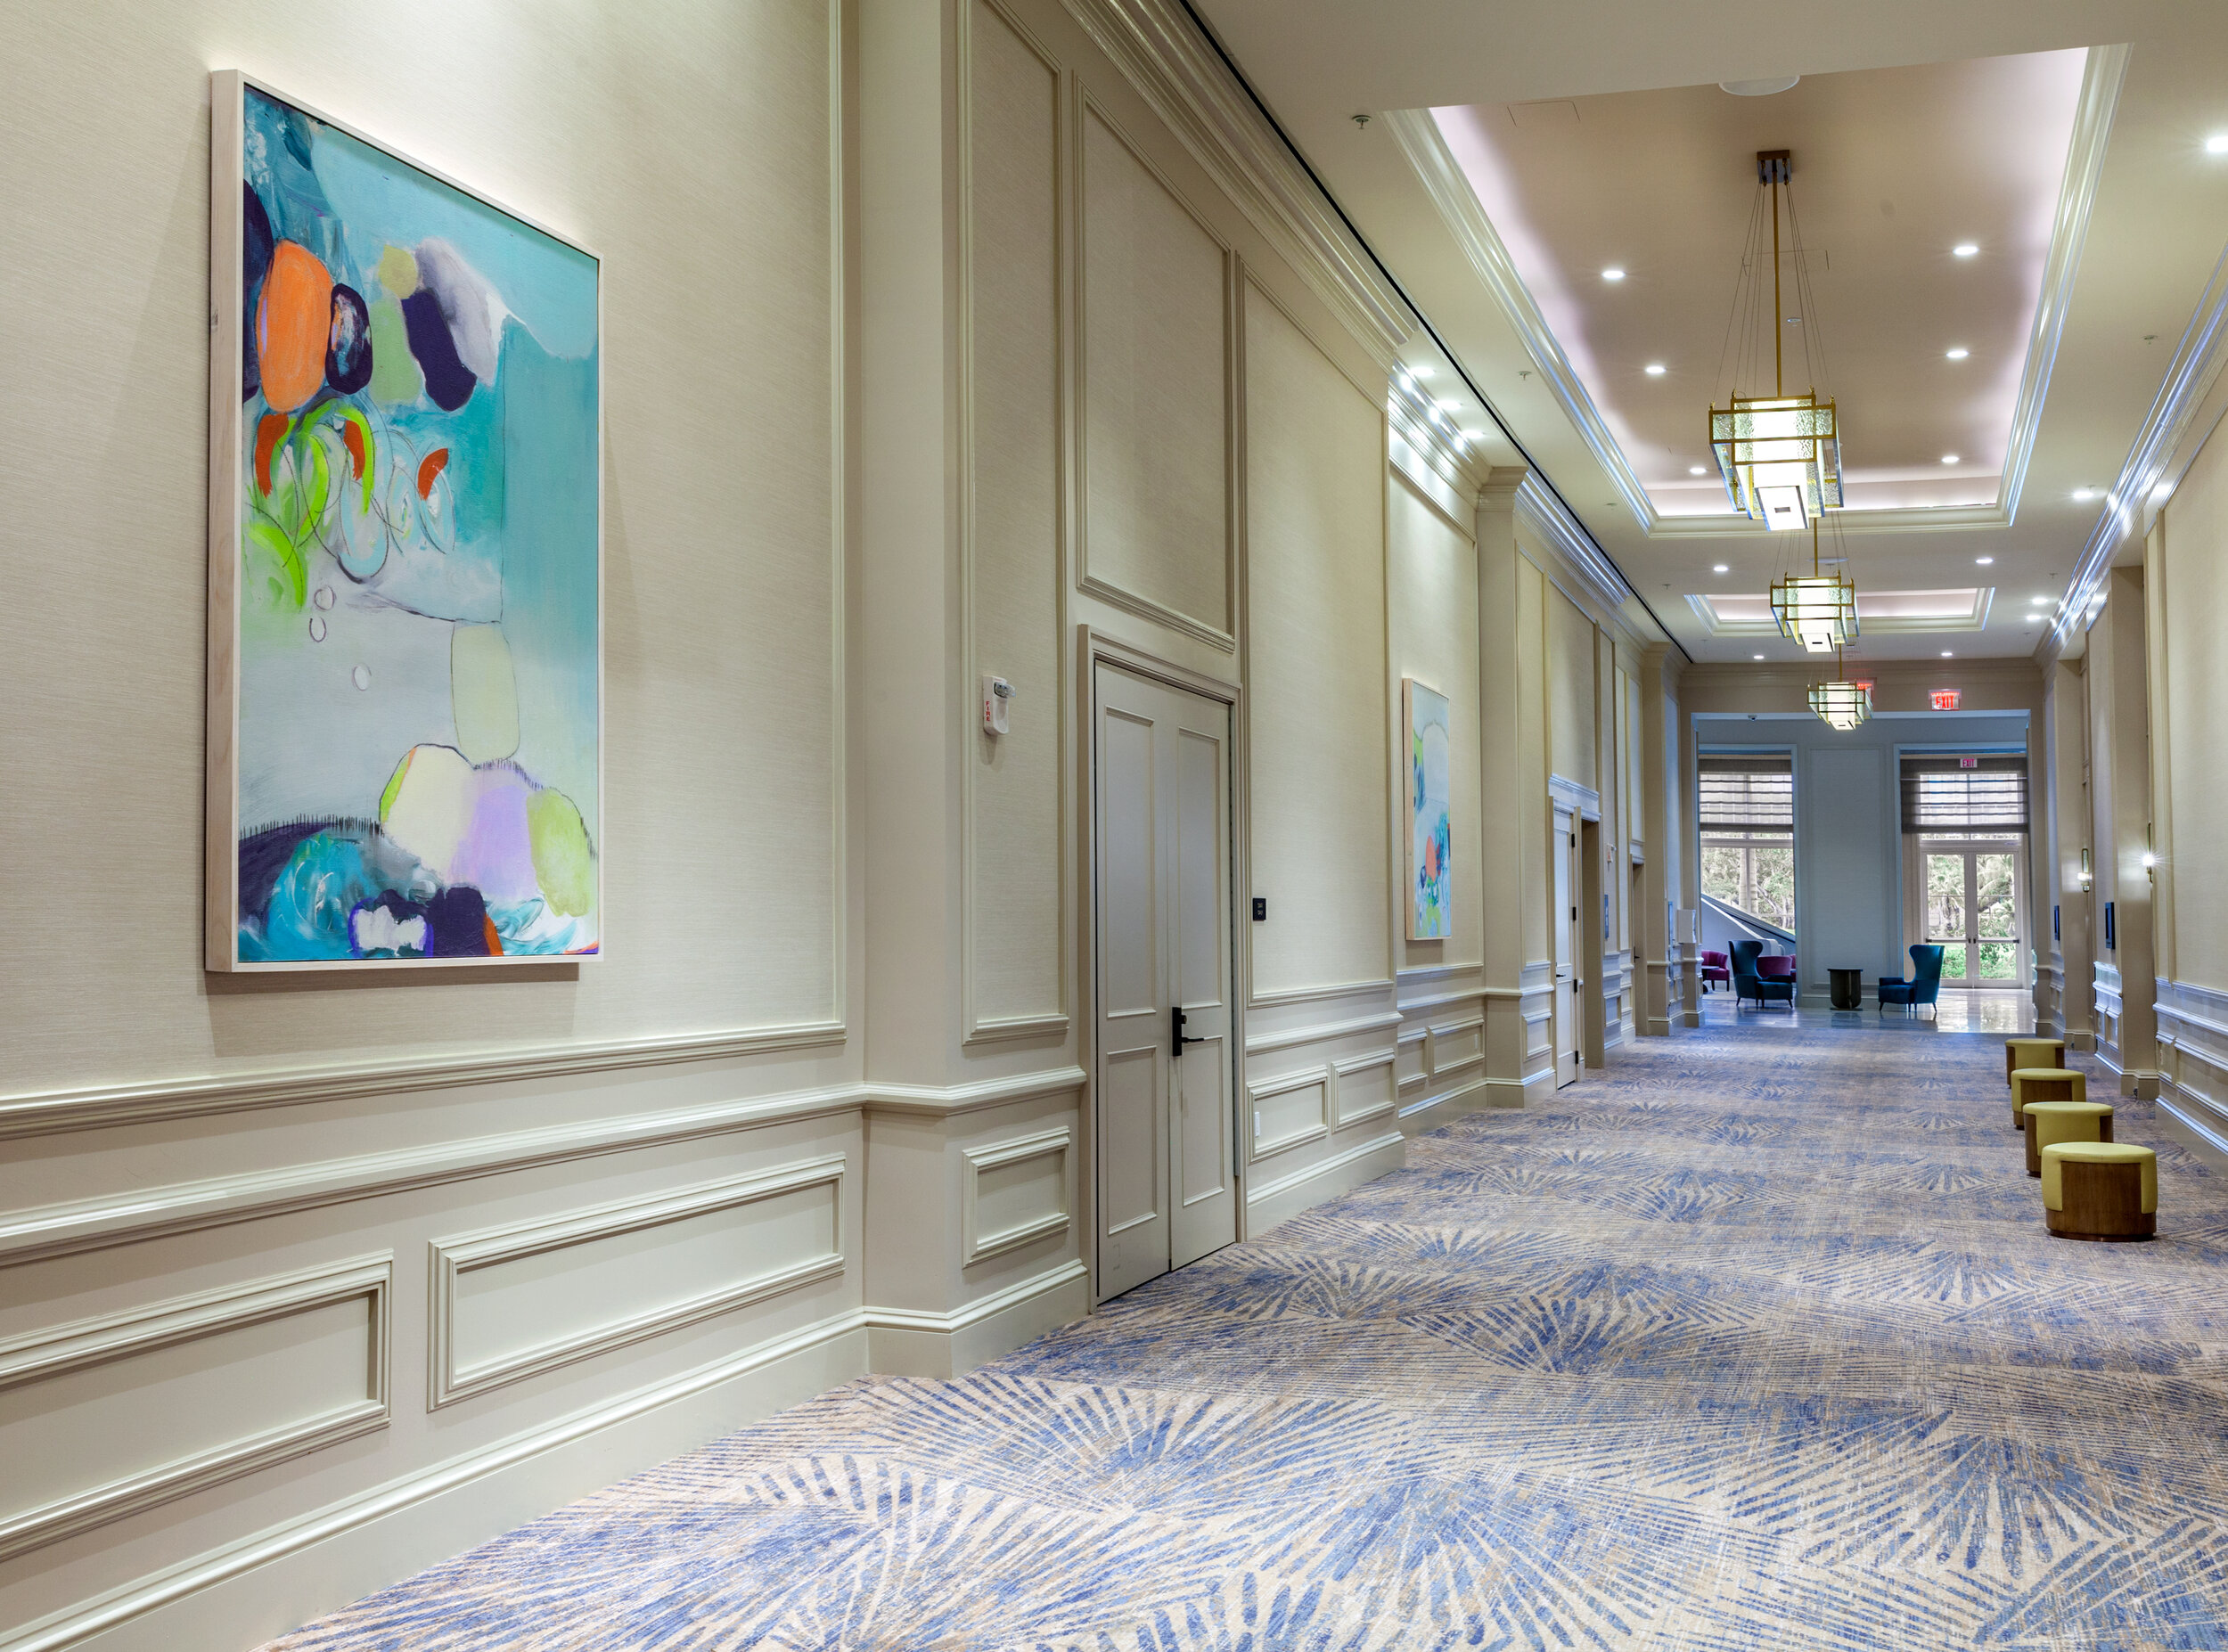 JW Marriott Miami Turnberry Resort & Spa - Curated by Indiewalls